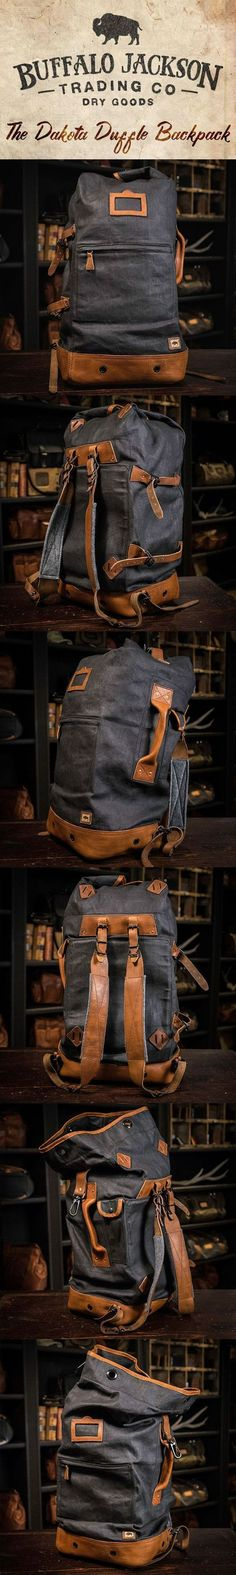 Crafted of waxed canvas and leather with a distressed vintage finish, this military duffle backpack was built to honor the memory of good men and good days. Most durable of canvases, and high quality leather. Plenty of room for all your work, sport, or travel products in this duffel. Great gift for him. #backpacking #travelmore #adventure #adventuretime